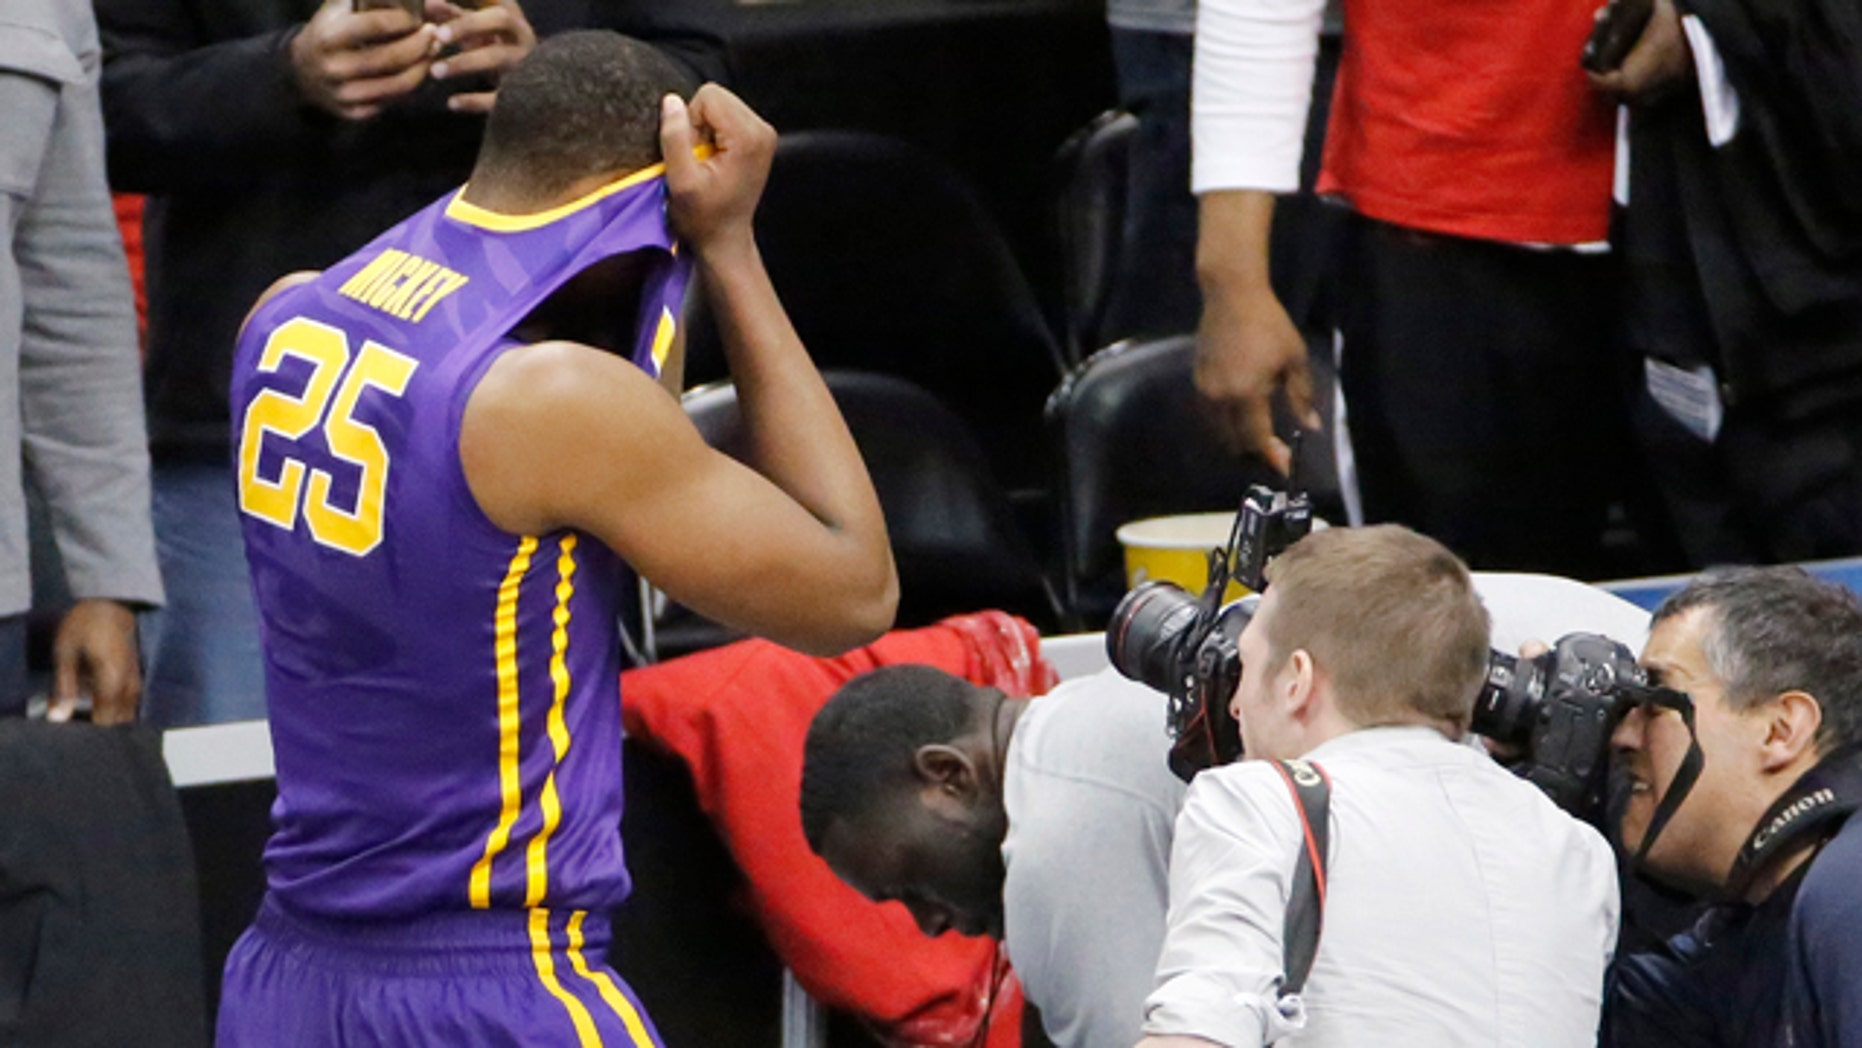 March 19, 2015: LSU's Jordan Mickey (25) leaves the court after his team lost 66-65 to North Carolina State in an NCAA tournament second round  game in Pittsburgh. (AP Photo/Gene J. Puskar)